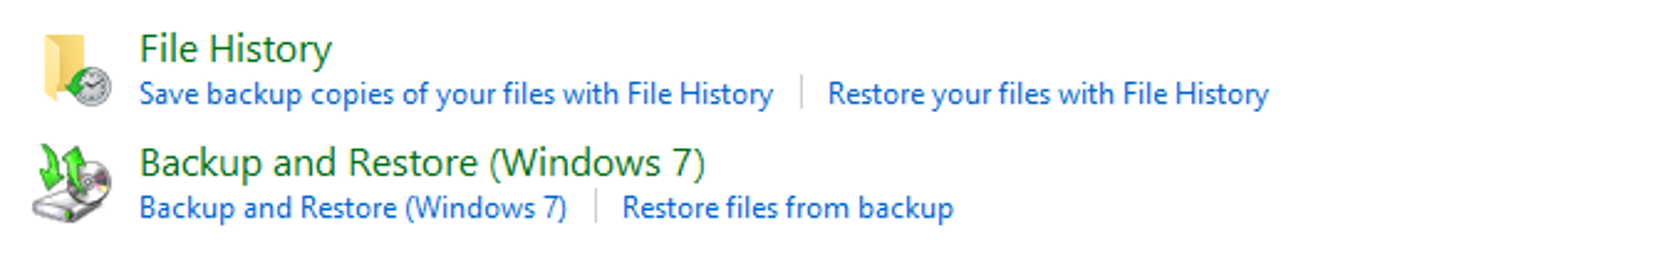 Save File History